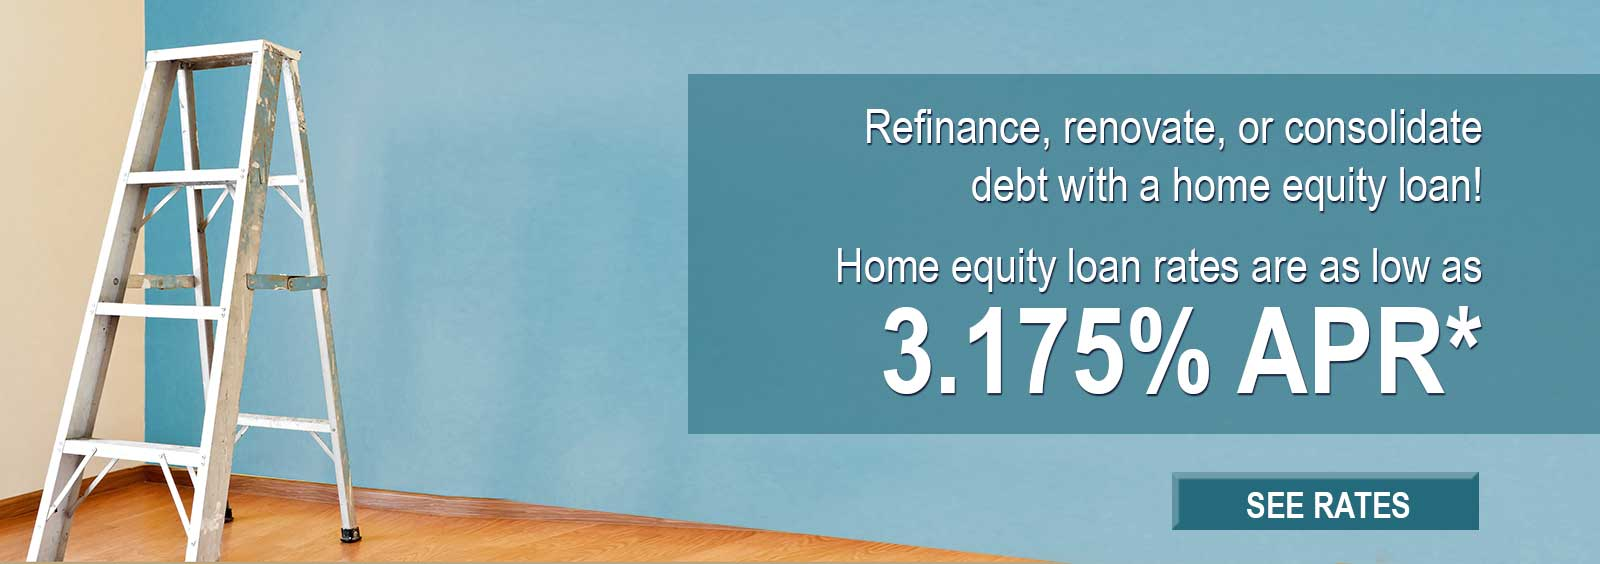 Home equity loan rates as low as 3.175% APR*